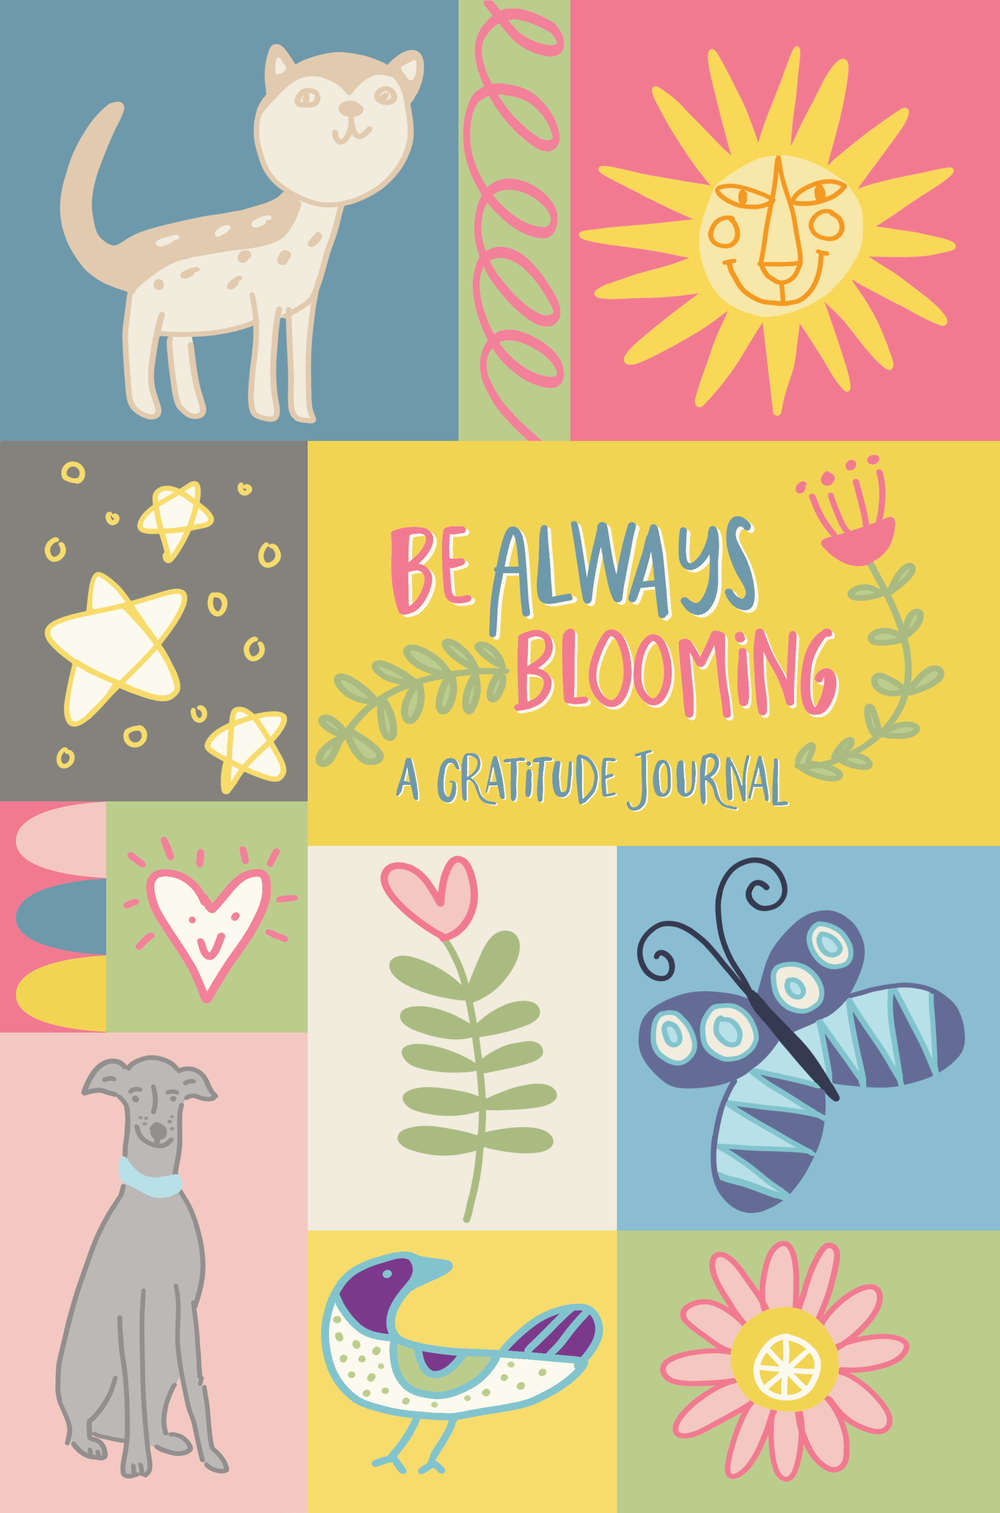 Children's Gratitude Journal Cover by Chris Olson